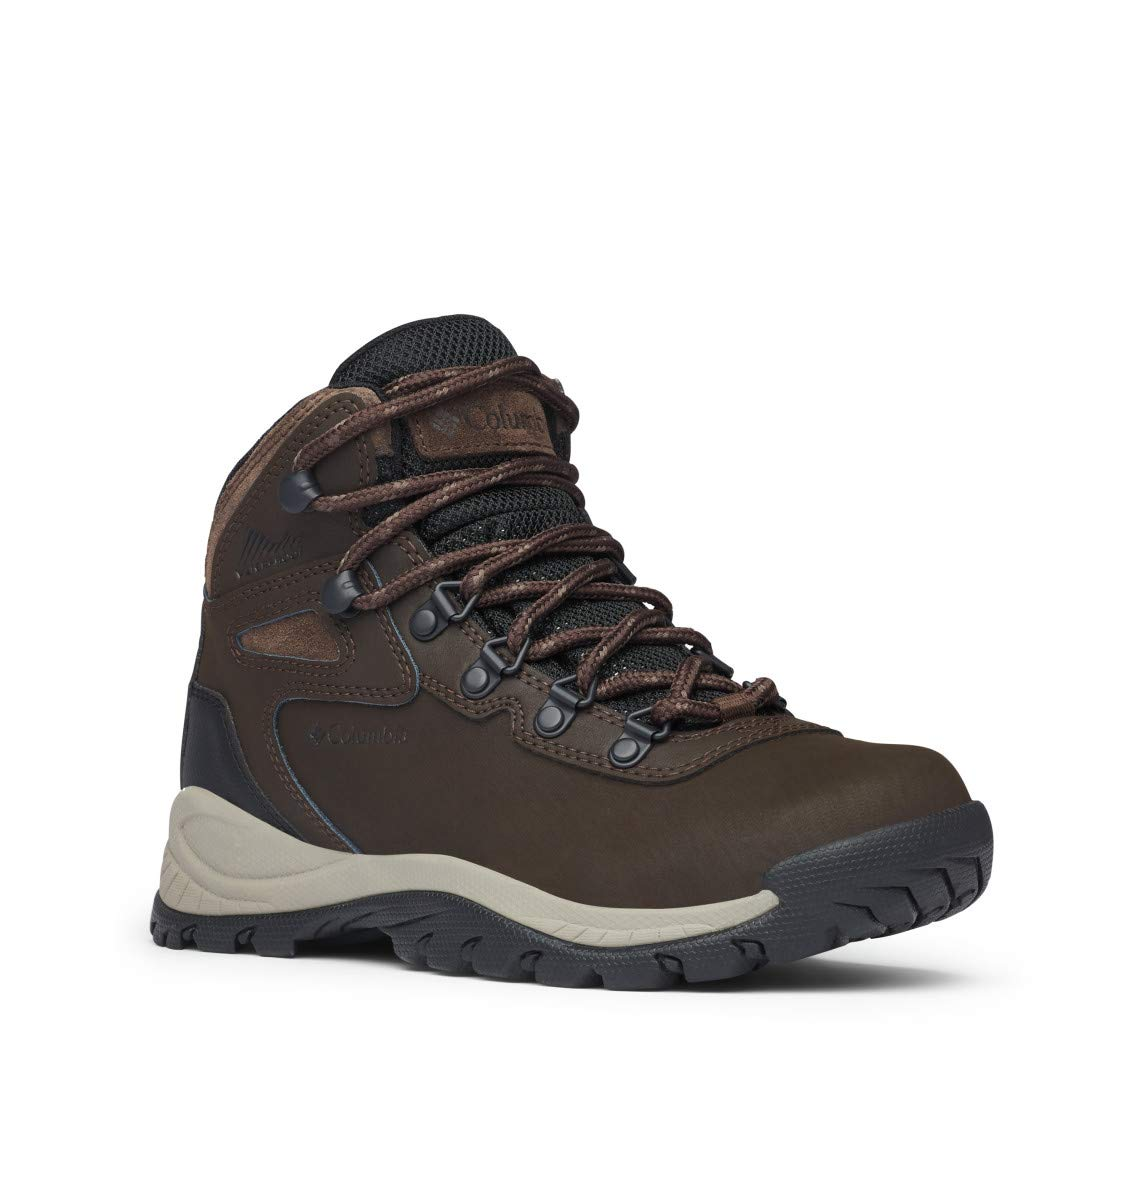 Columbia Women's Newton Ridge Plus-Wide Hiking Boot,Cordovan/Crown Jewel,9.5 W US by Columbia